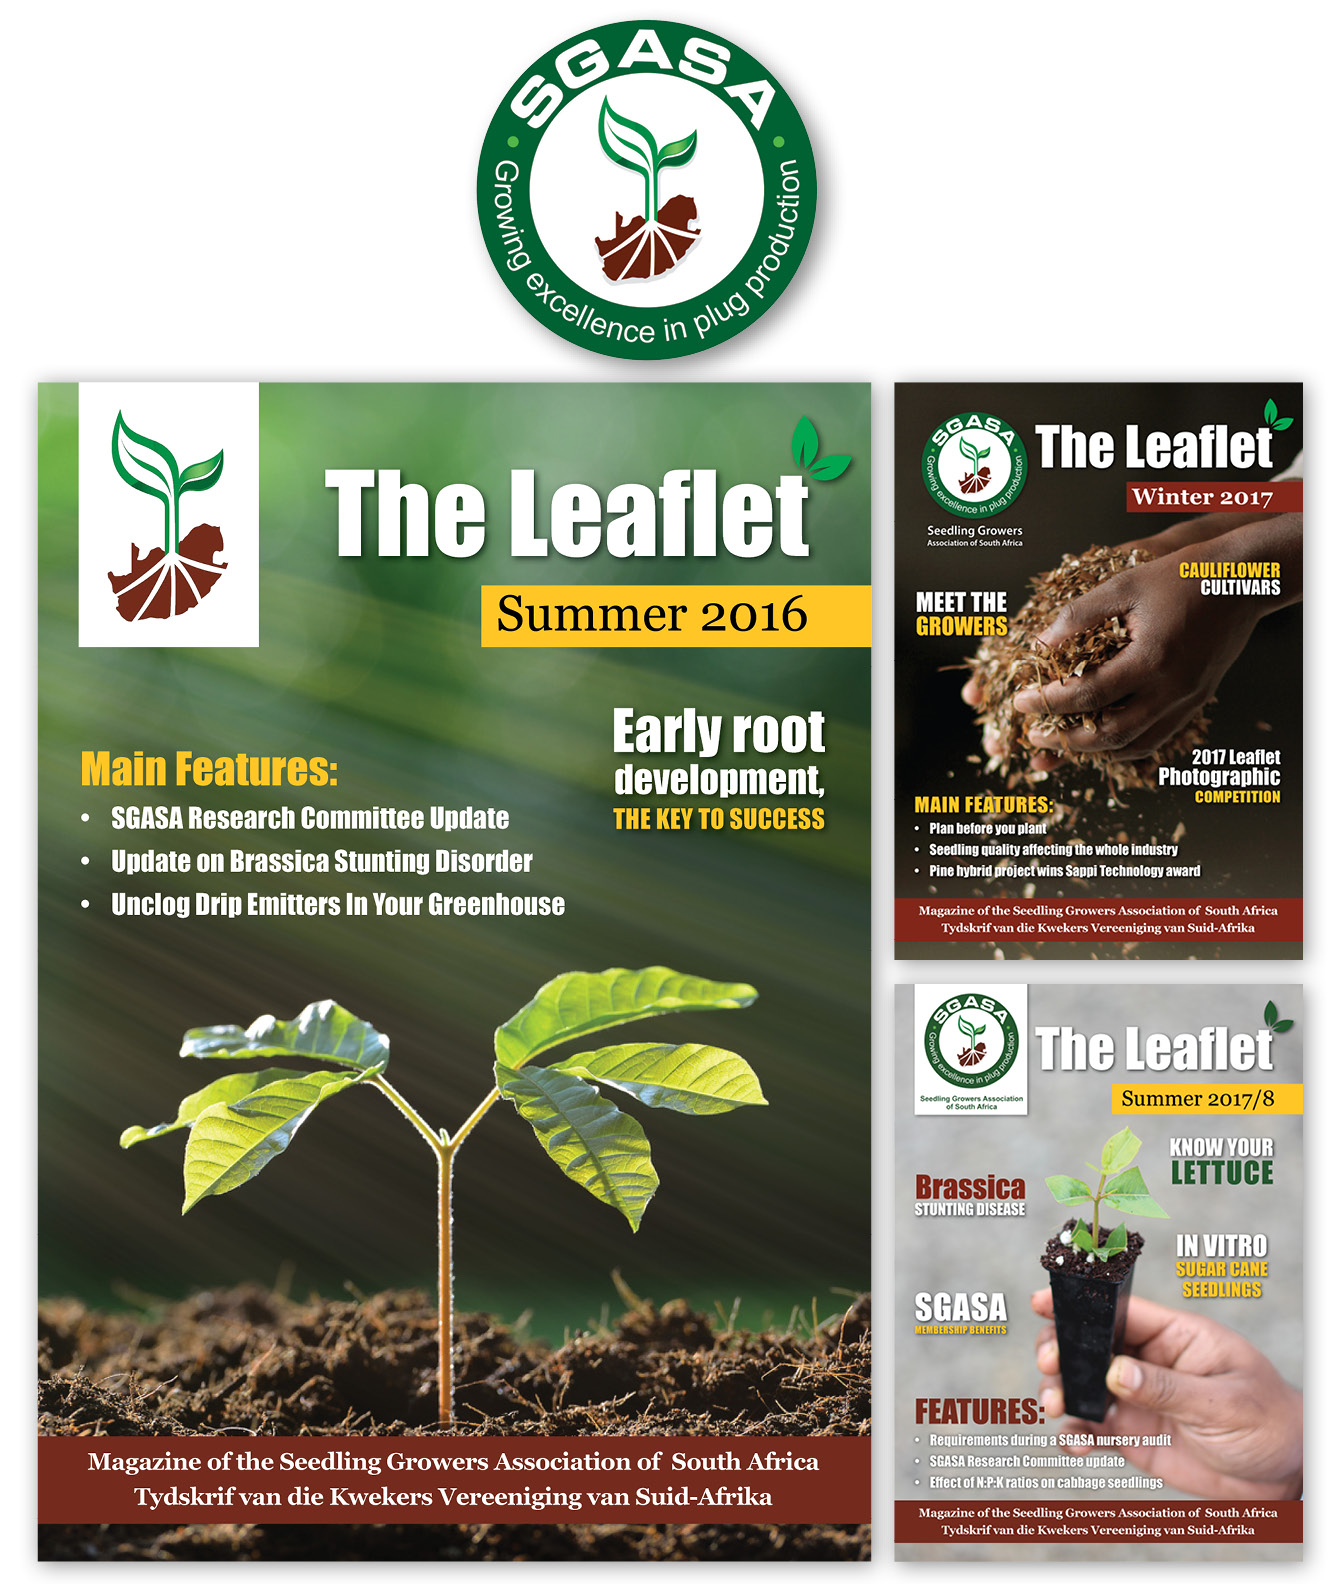 Seedling Growers Association of South Africa Leaflet